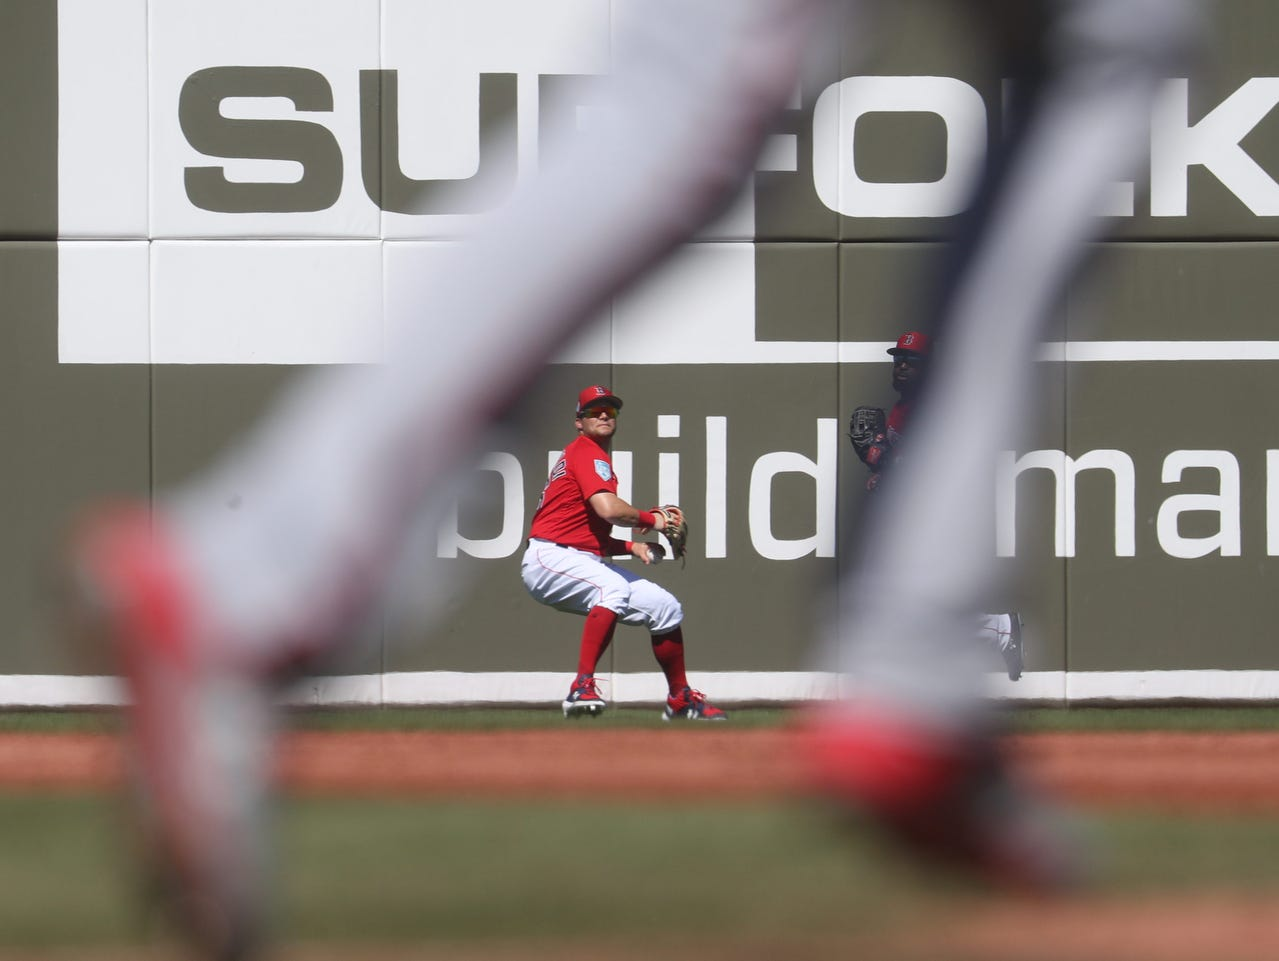 Images from the Red Sox vs. Nationals spring training game at JetBlue Park on Thursday 2/28/2019.